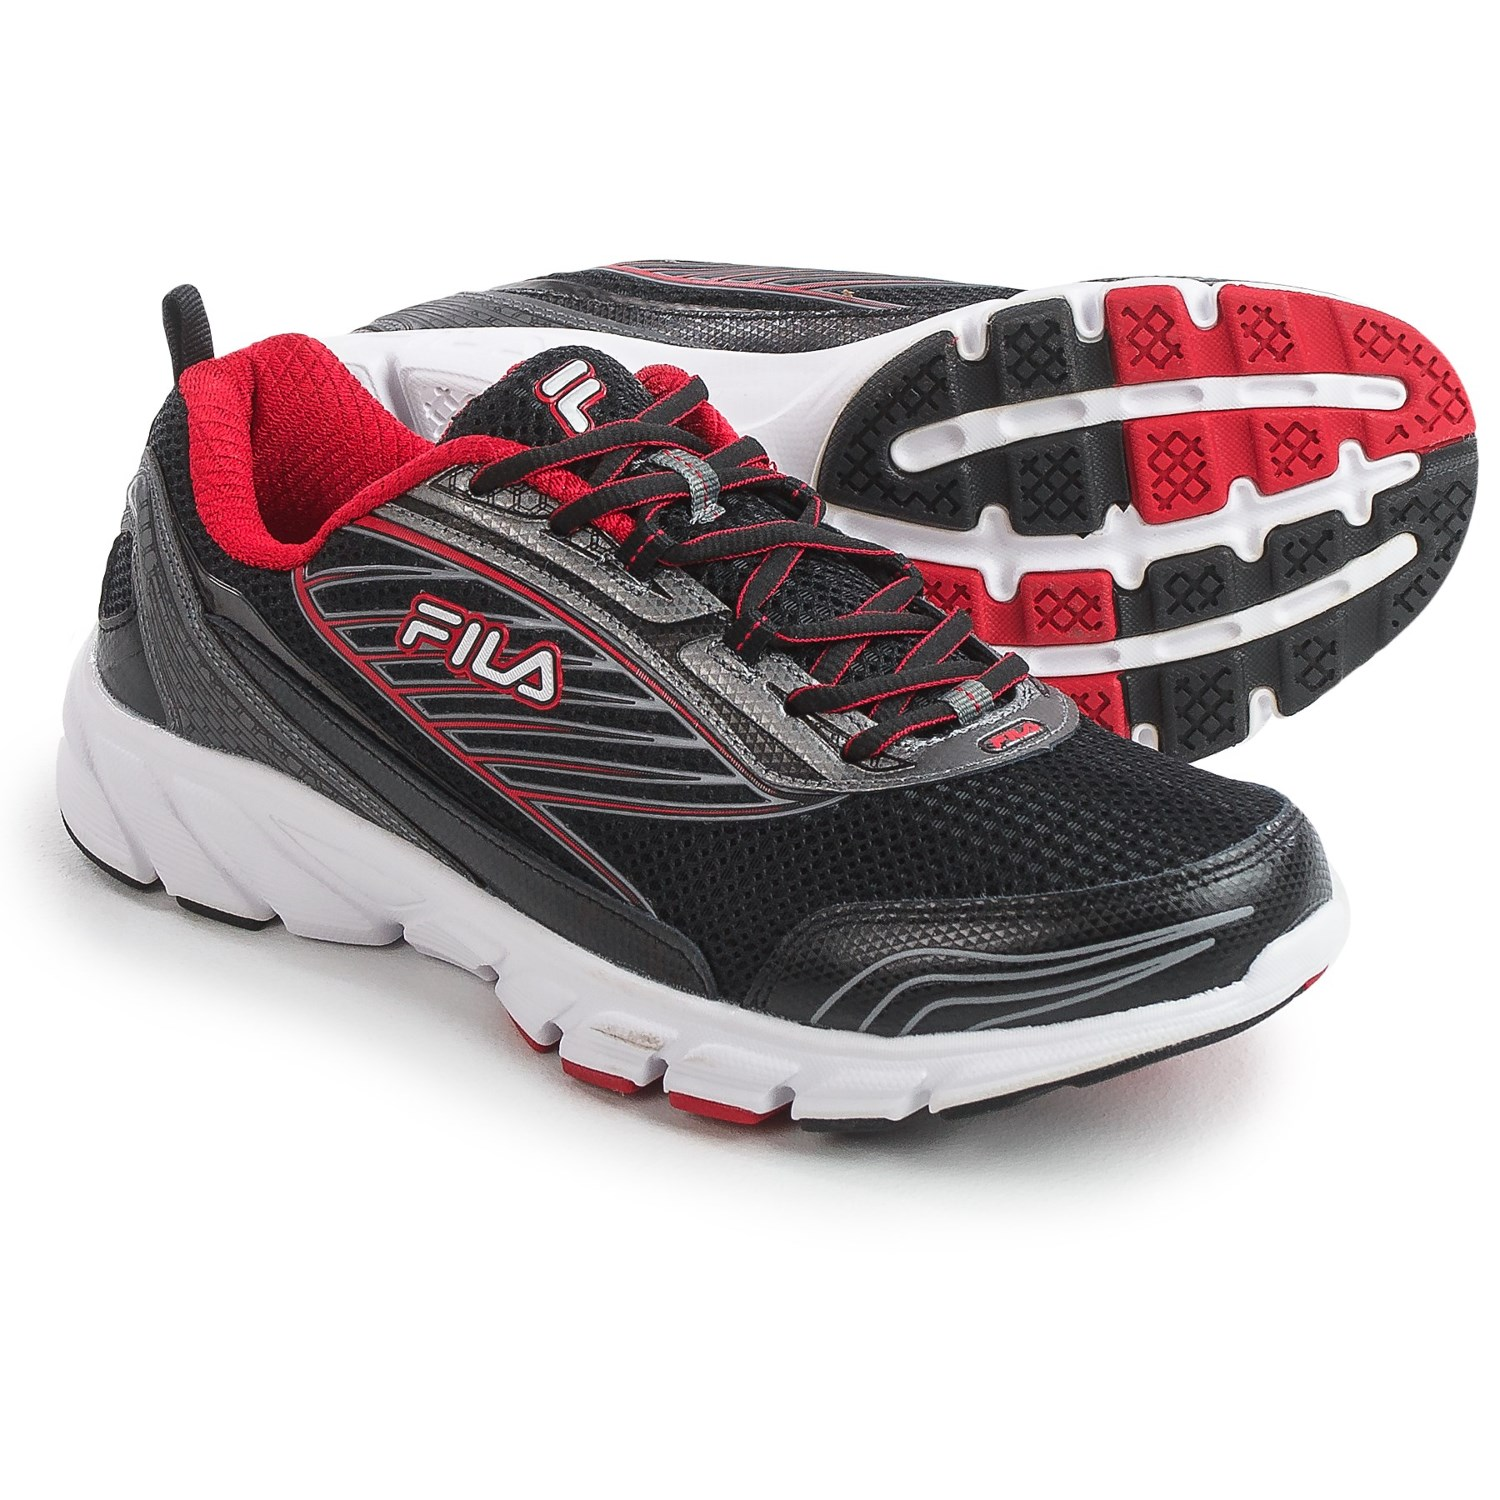 fila shoes men. fila forward 2 running shoes (for men) in black/dark silver/red men o